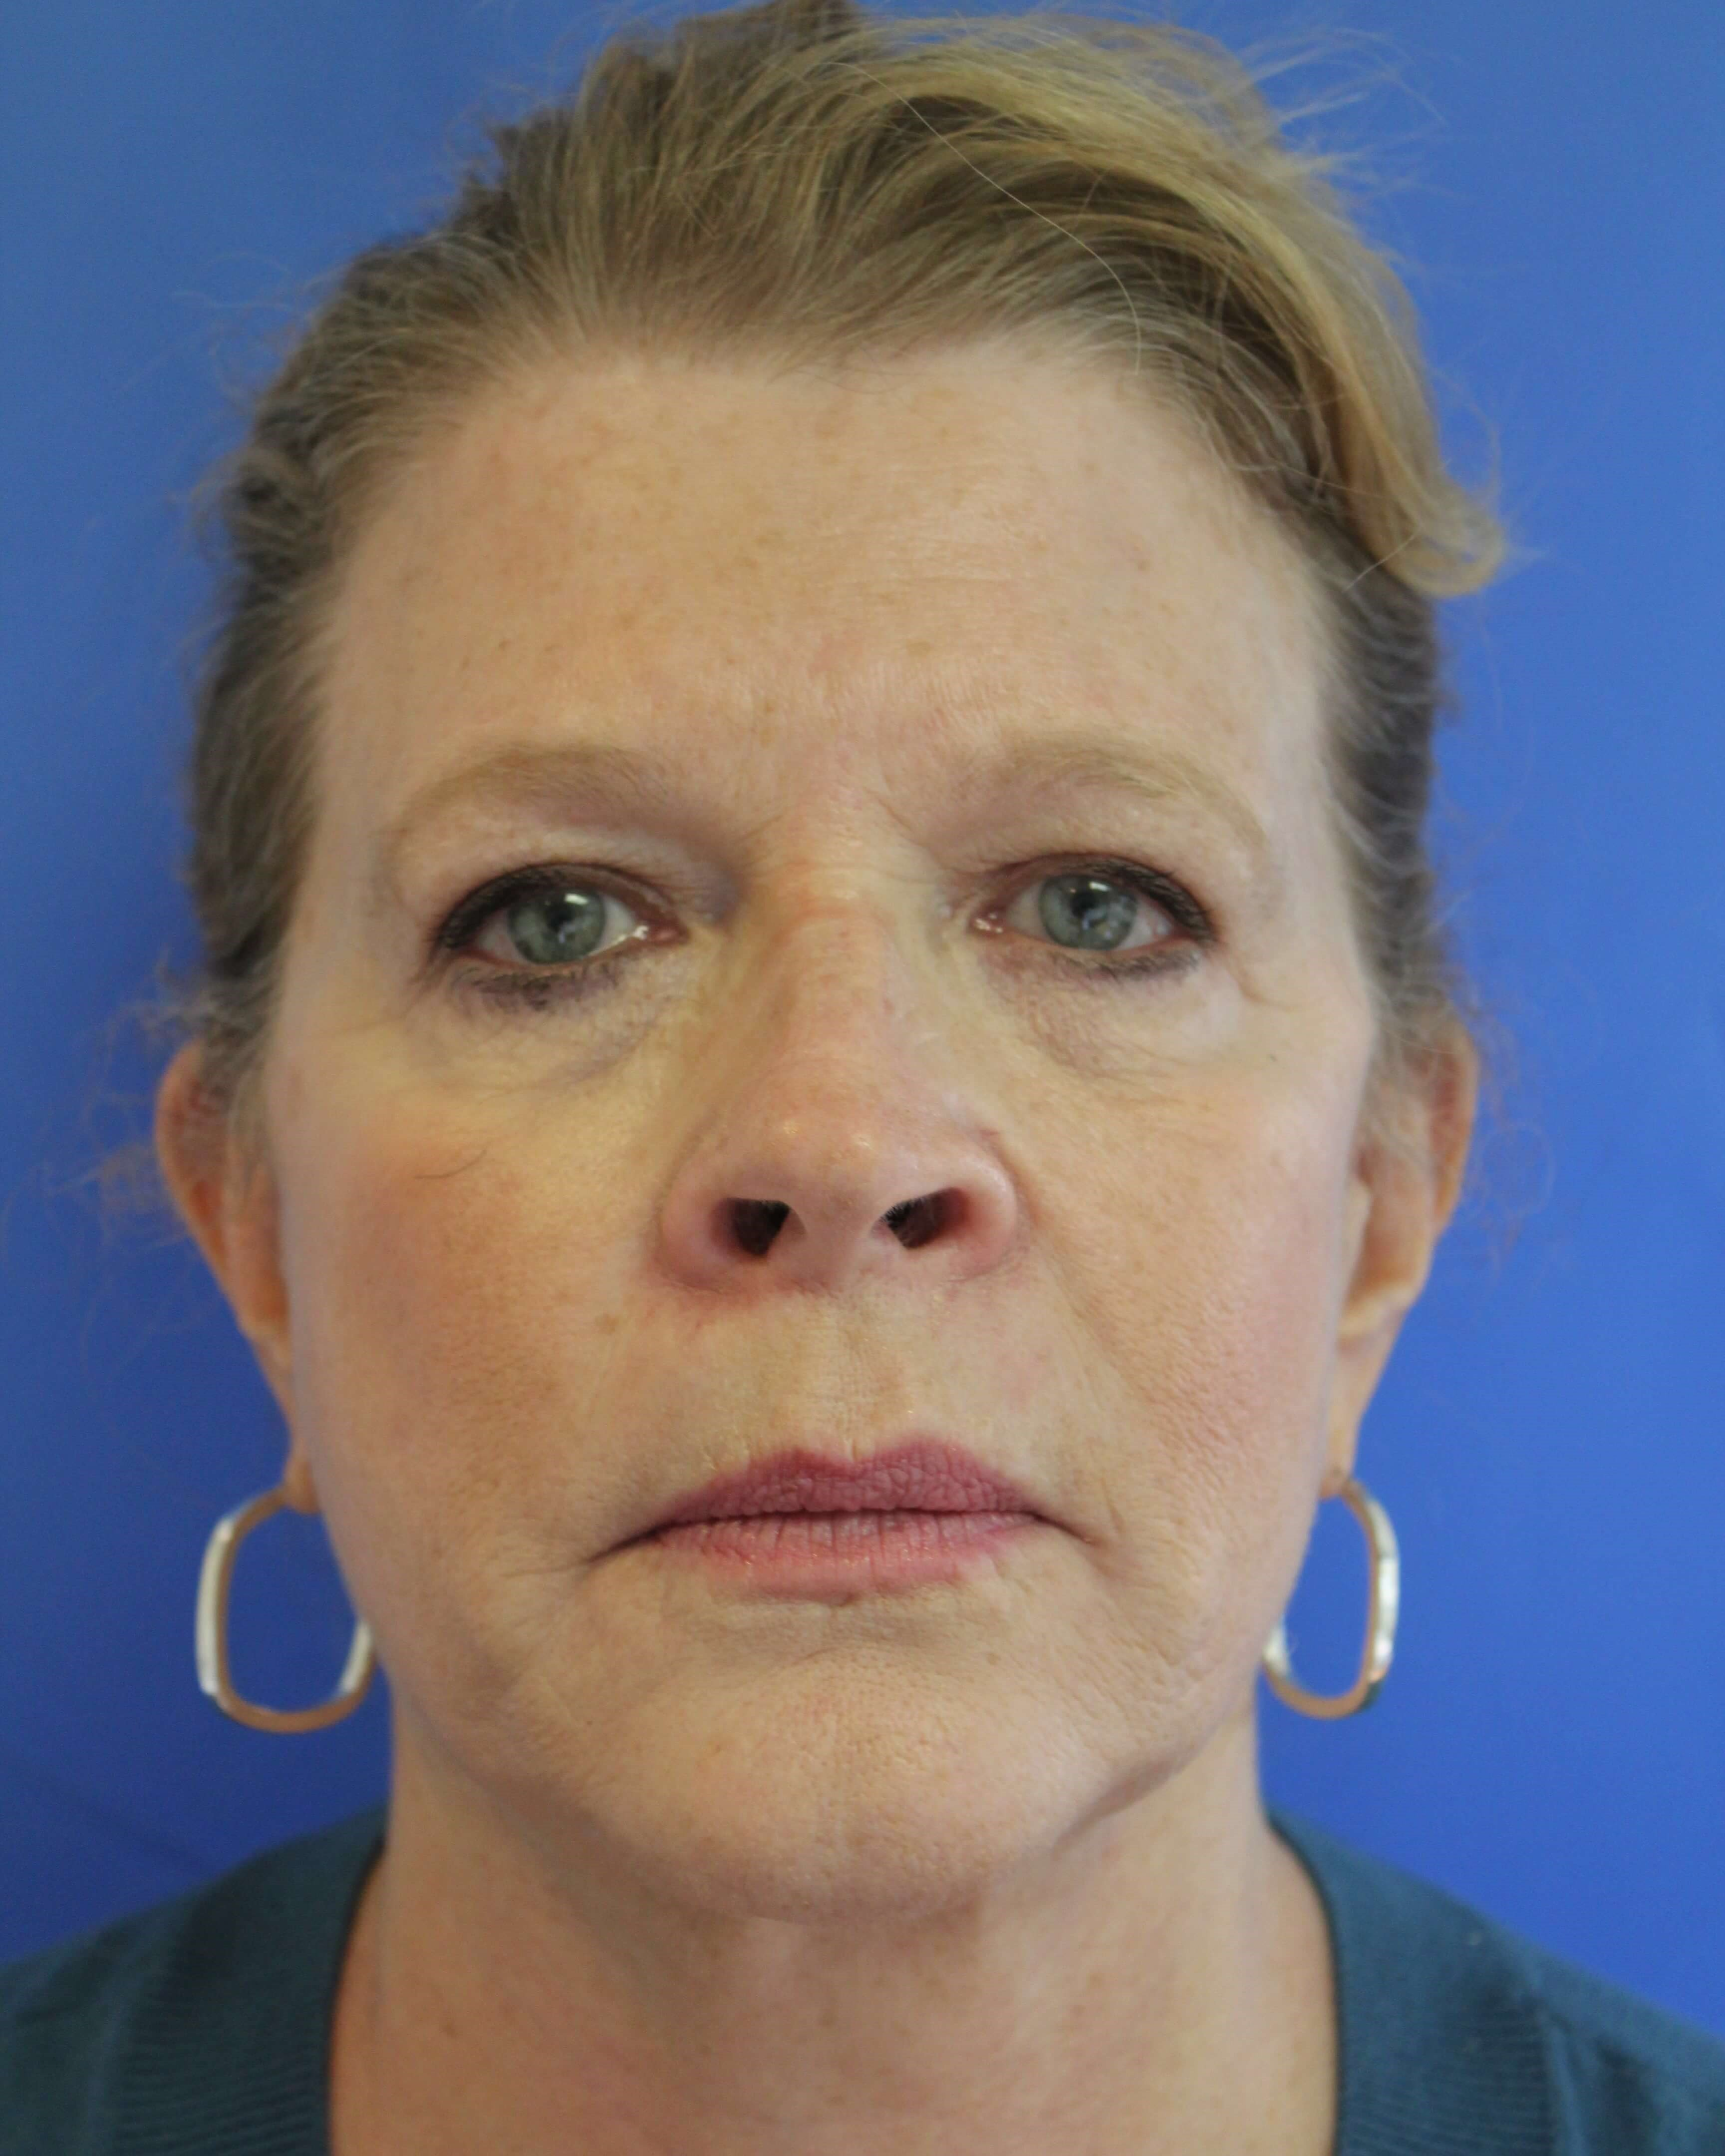 Facelift, CO2, browlift After